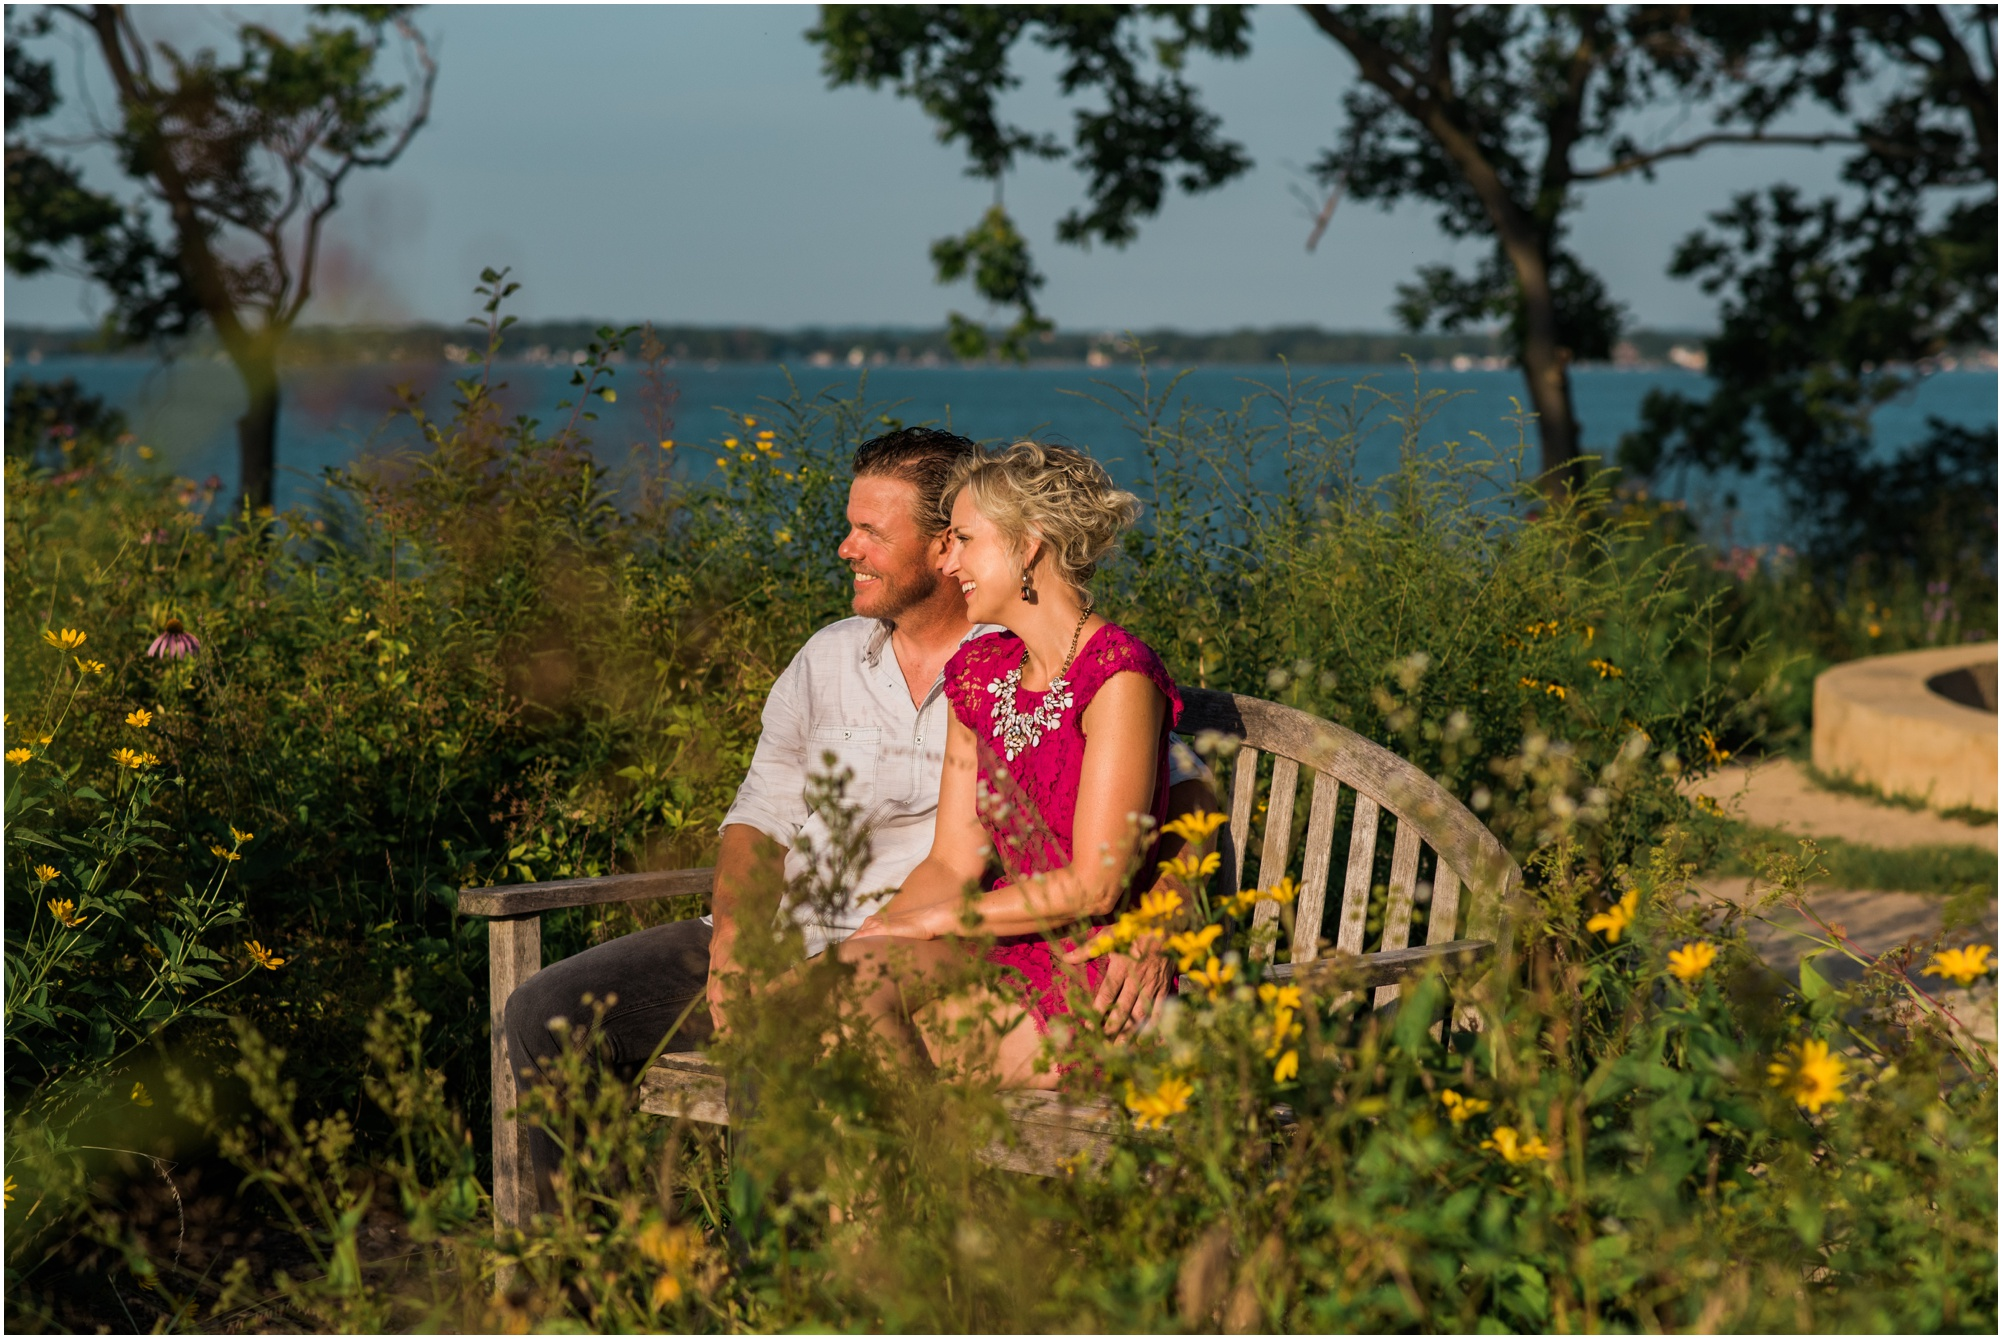 Madison-Engagement-Photographer-Picnic-Point-Madison-Wisconsin-Engagement-Session-Kelli-and-Robert-74.jpg